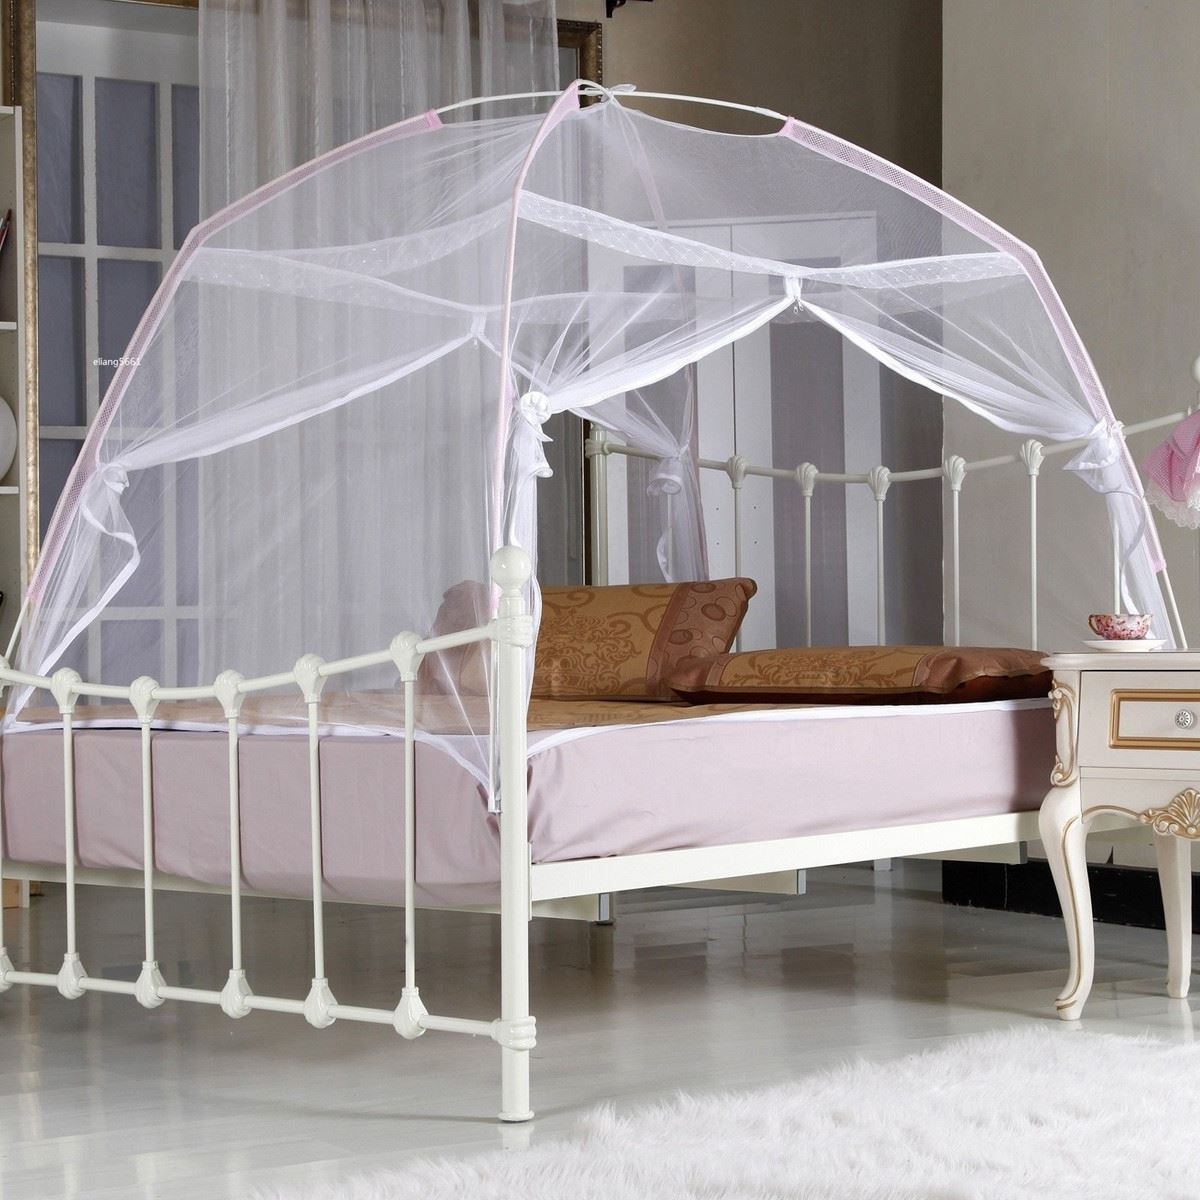 Aliexpresse Canapé : Online get cheap portable canopy aliexpress alibaba